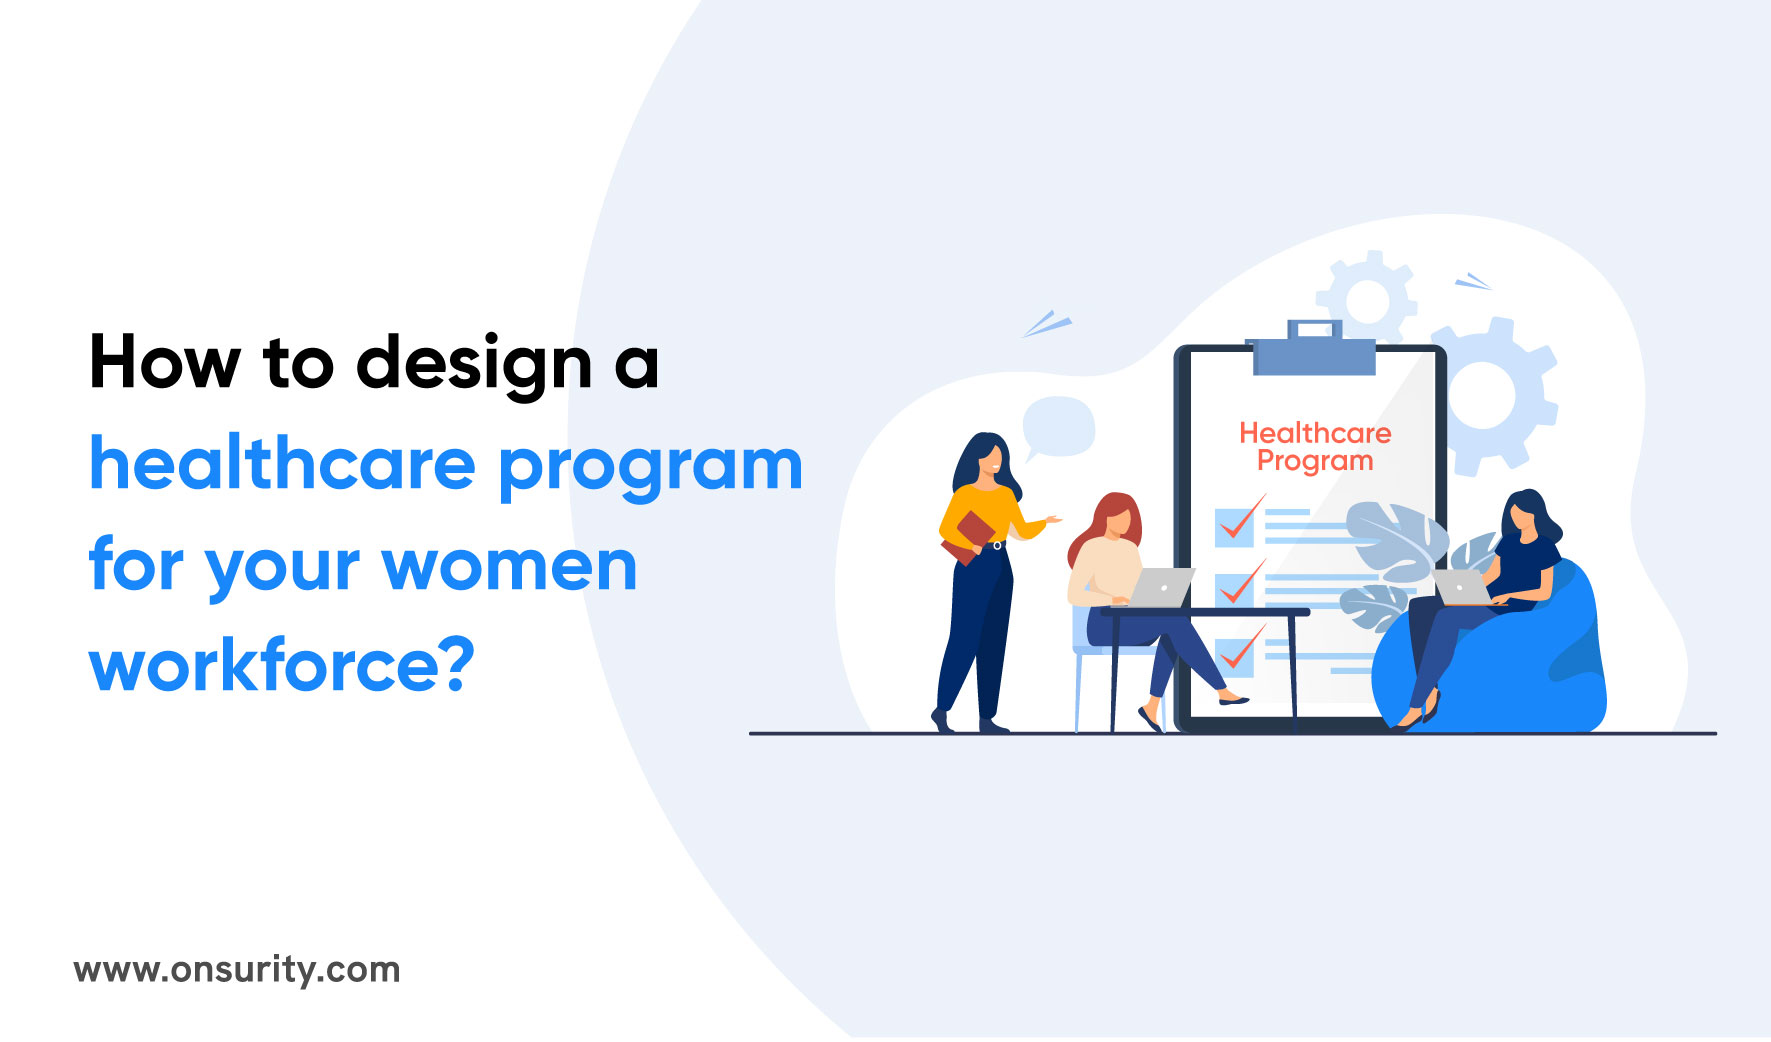 5 ways to design health care plans for employed women